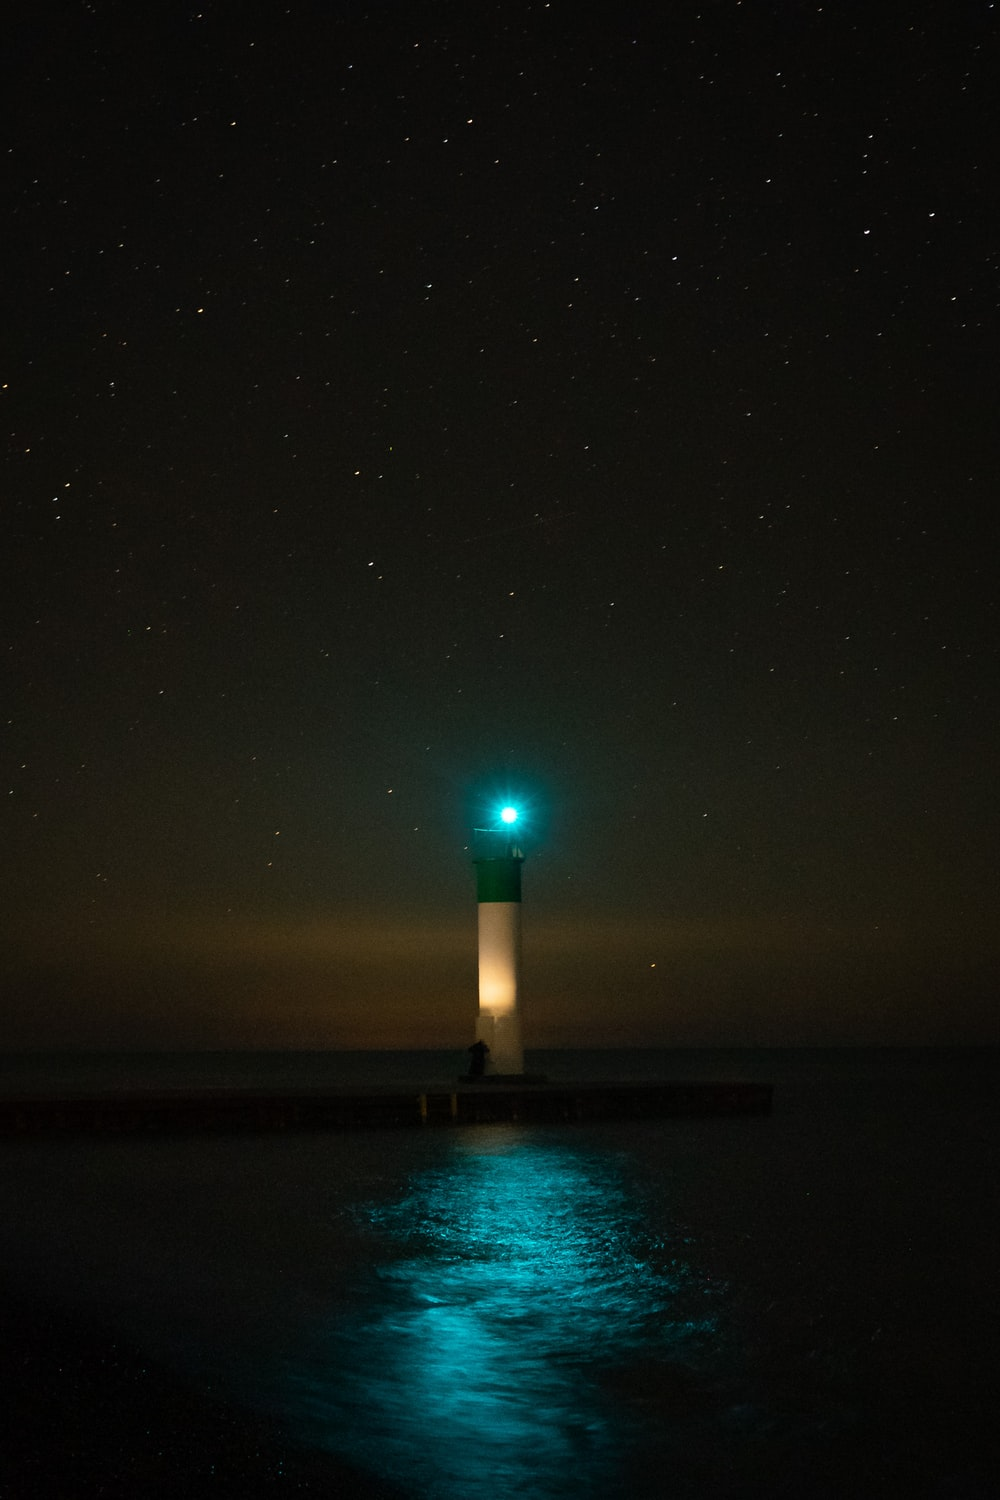 lighted lighthouse during night time